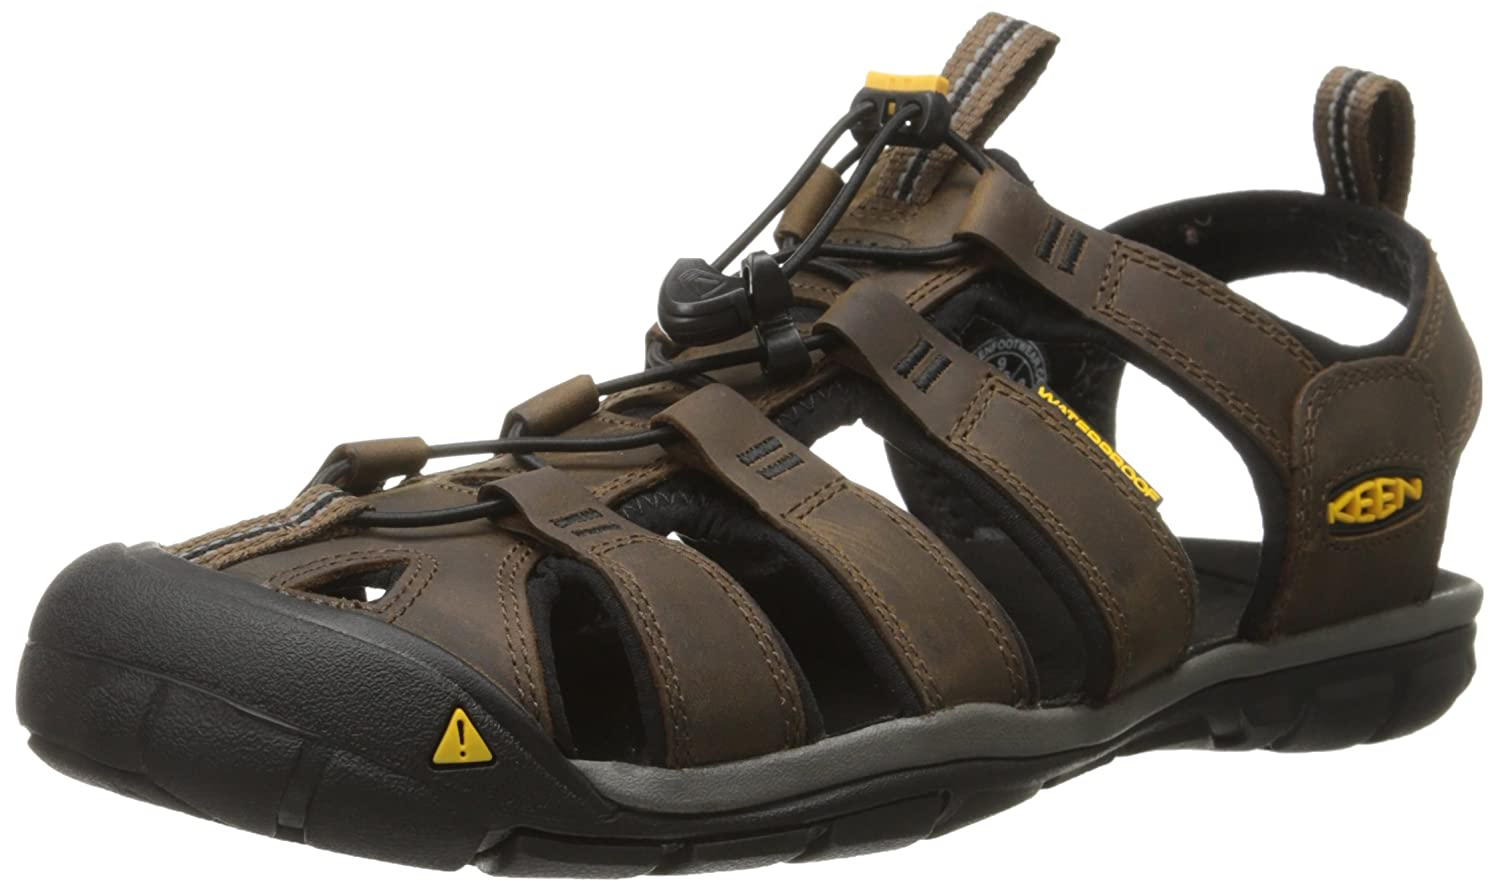 Keen Clearwater CNX Leather, Sandalias de Senderismo Para Hombre 41 EU|Marrón (Dark Earth/Black Dark Earth/Black)